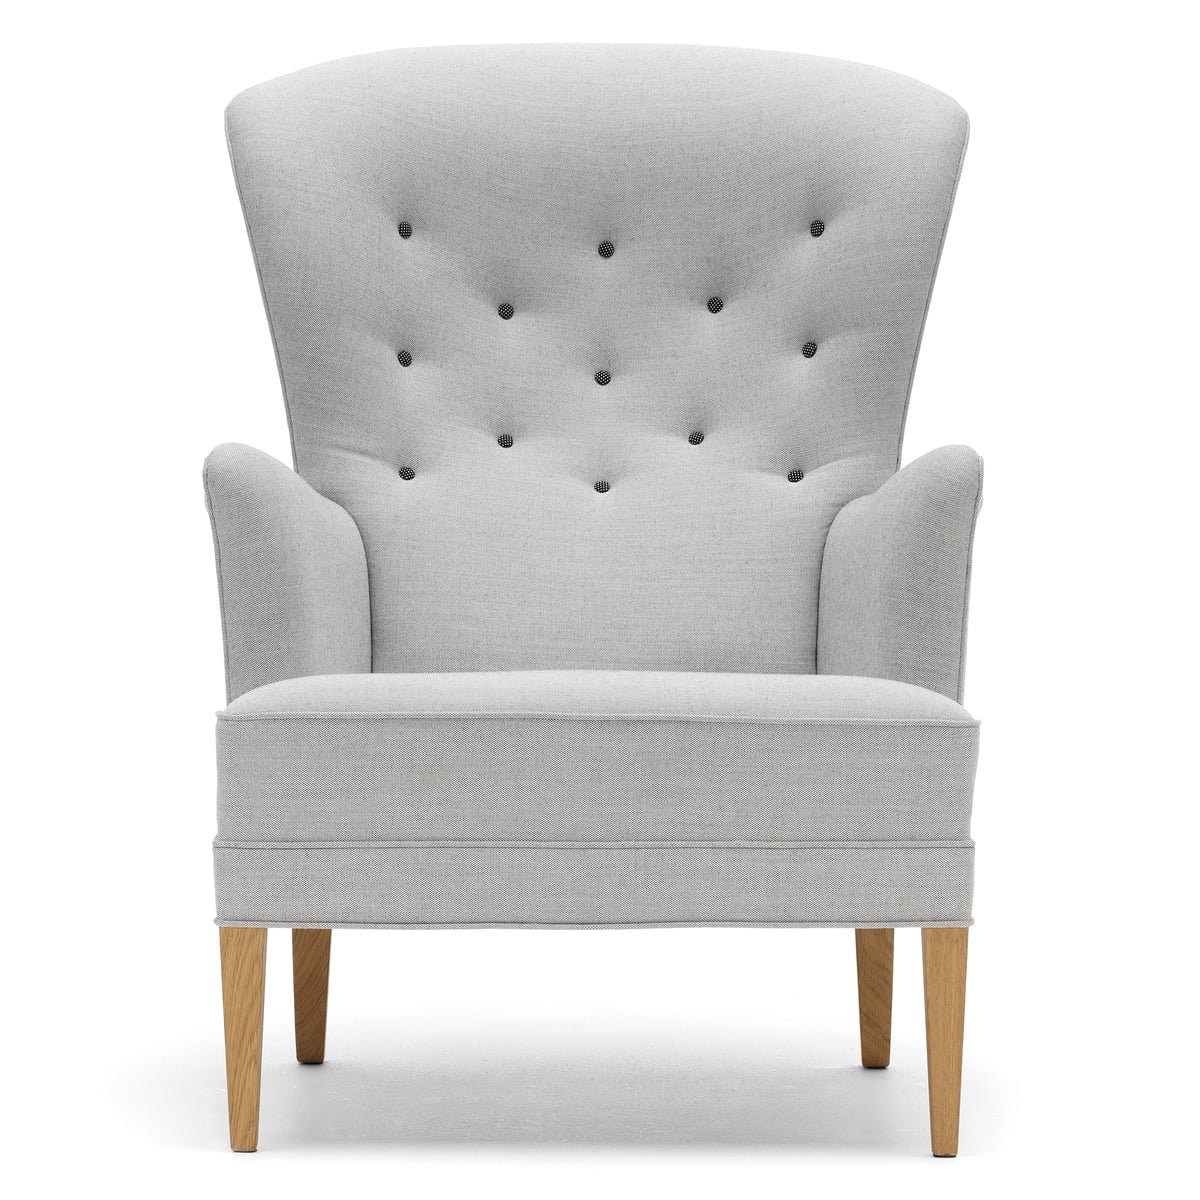 Wondrous Carl Hansen Fh419 Heritage Chair Oiled Oak Light Grey Canvas 124 Hallingdal 126 Buttons Pdpeps Interior Chair Design Pdpepsorg